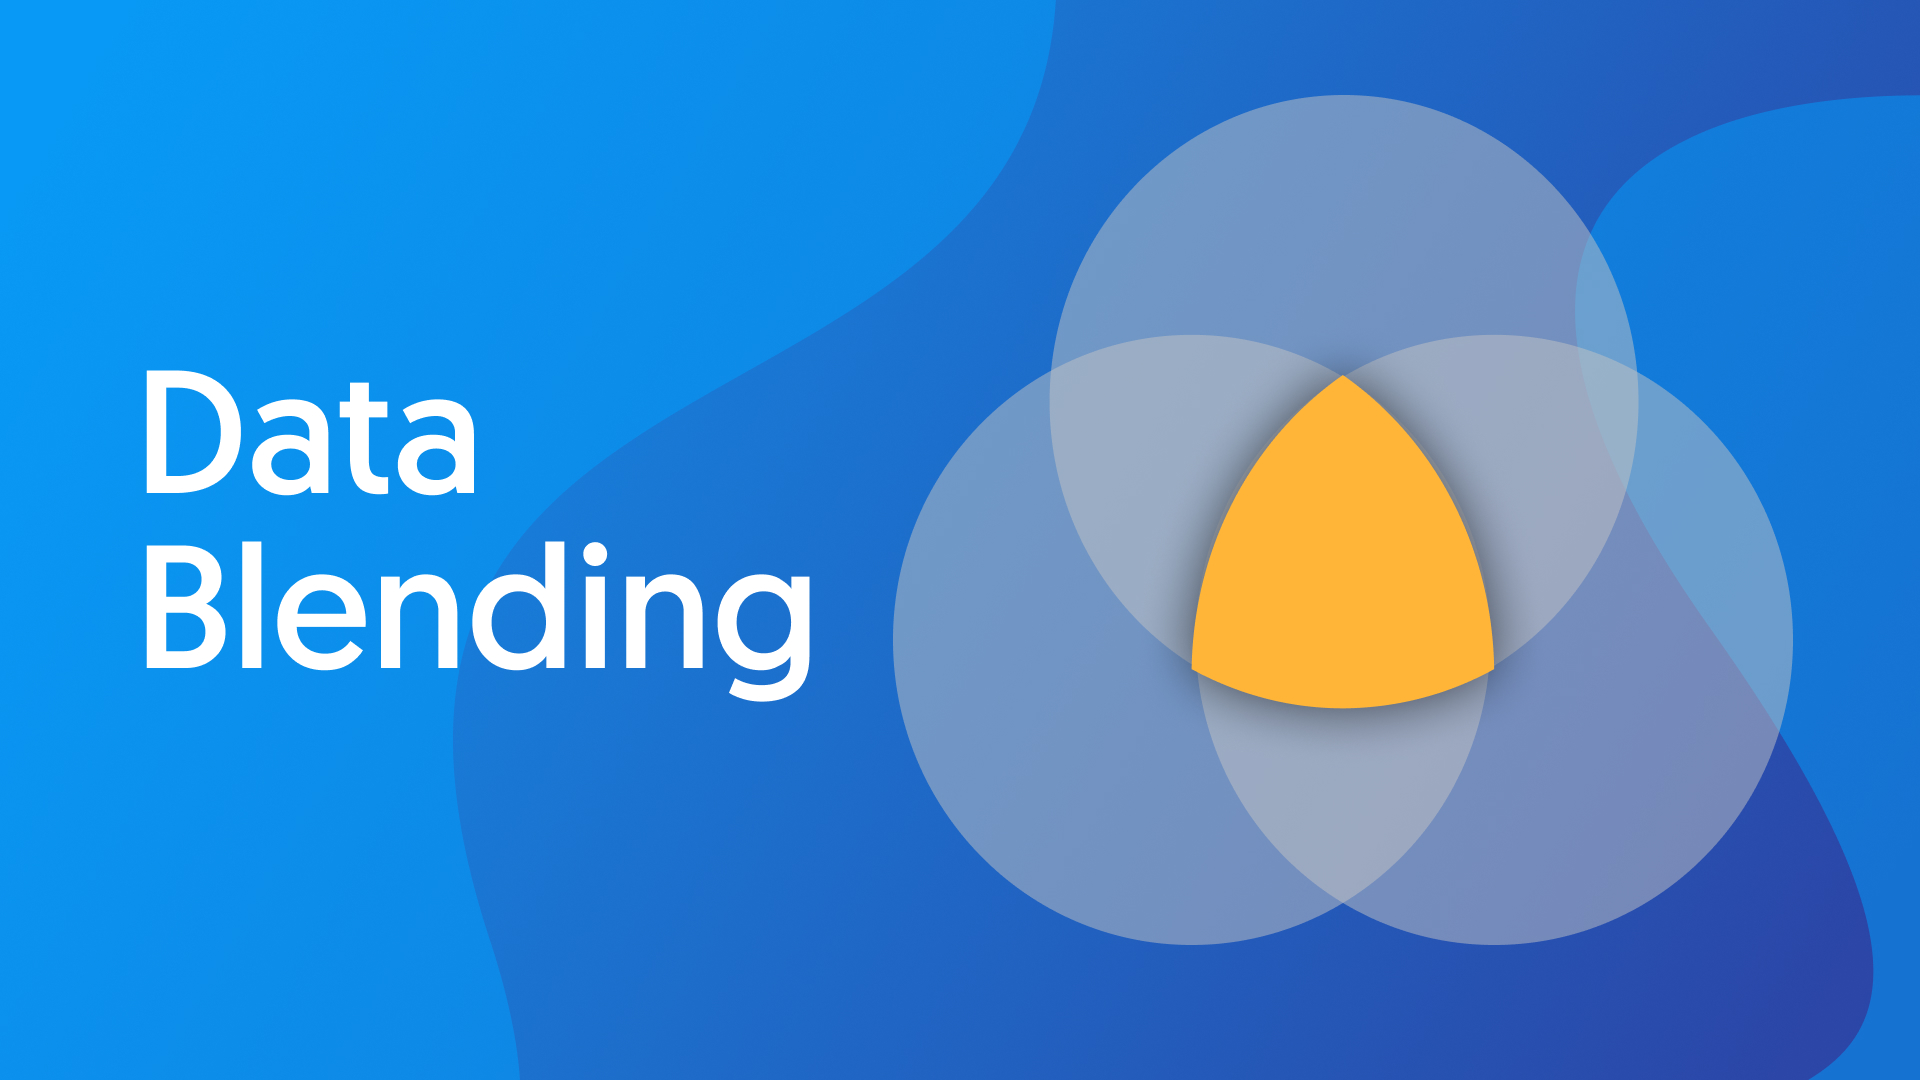 Data Blending is here for you.